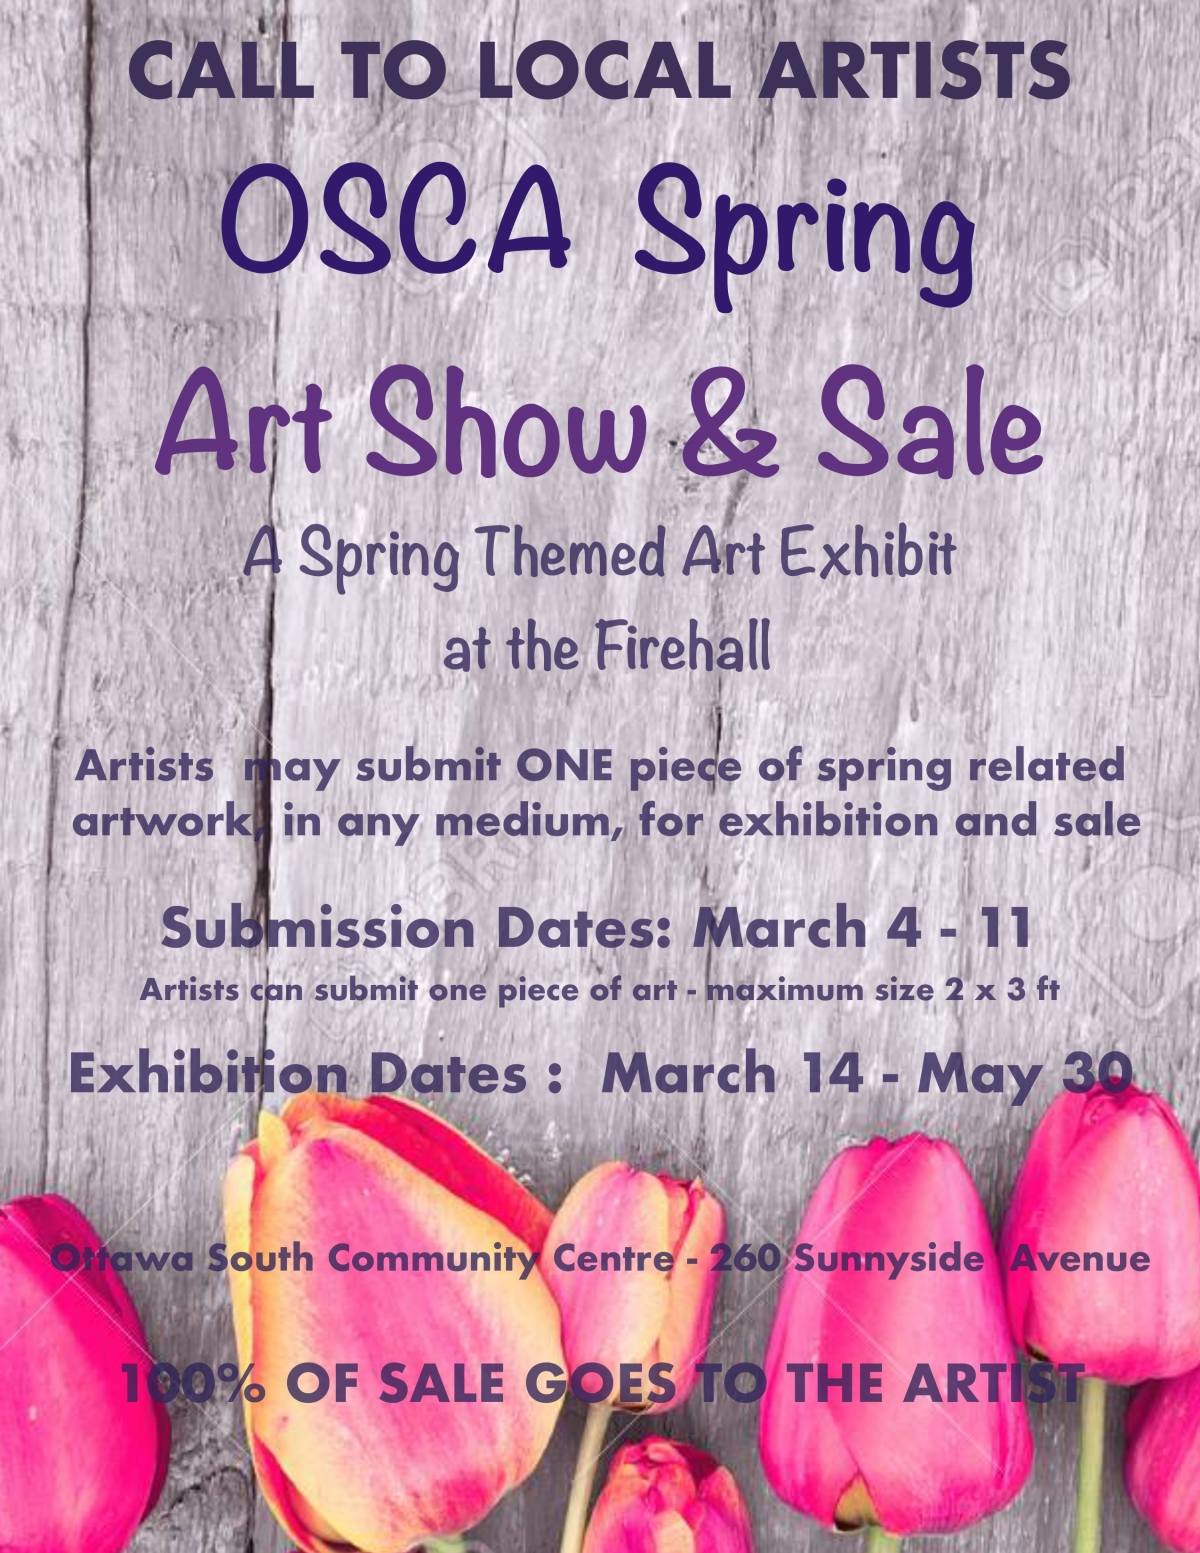 Spring Art Show & Sale - Accepting Pieces from March 4th to 11th